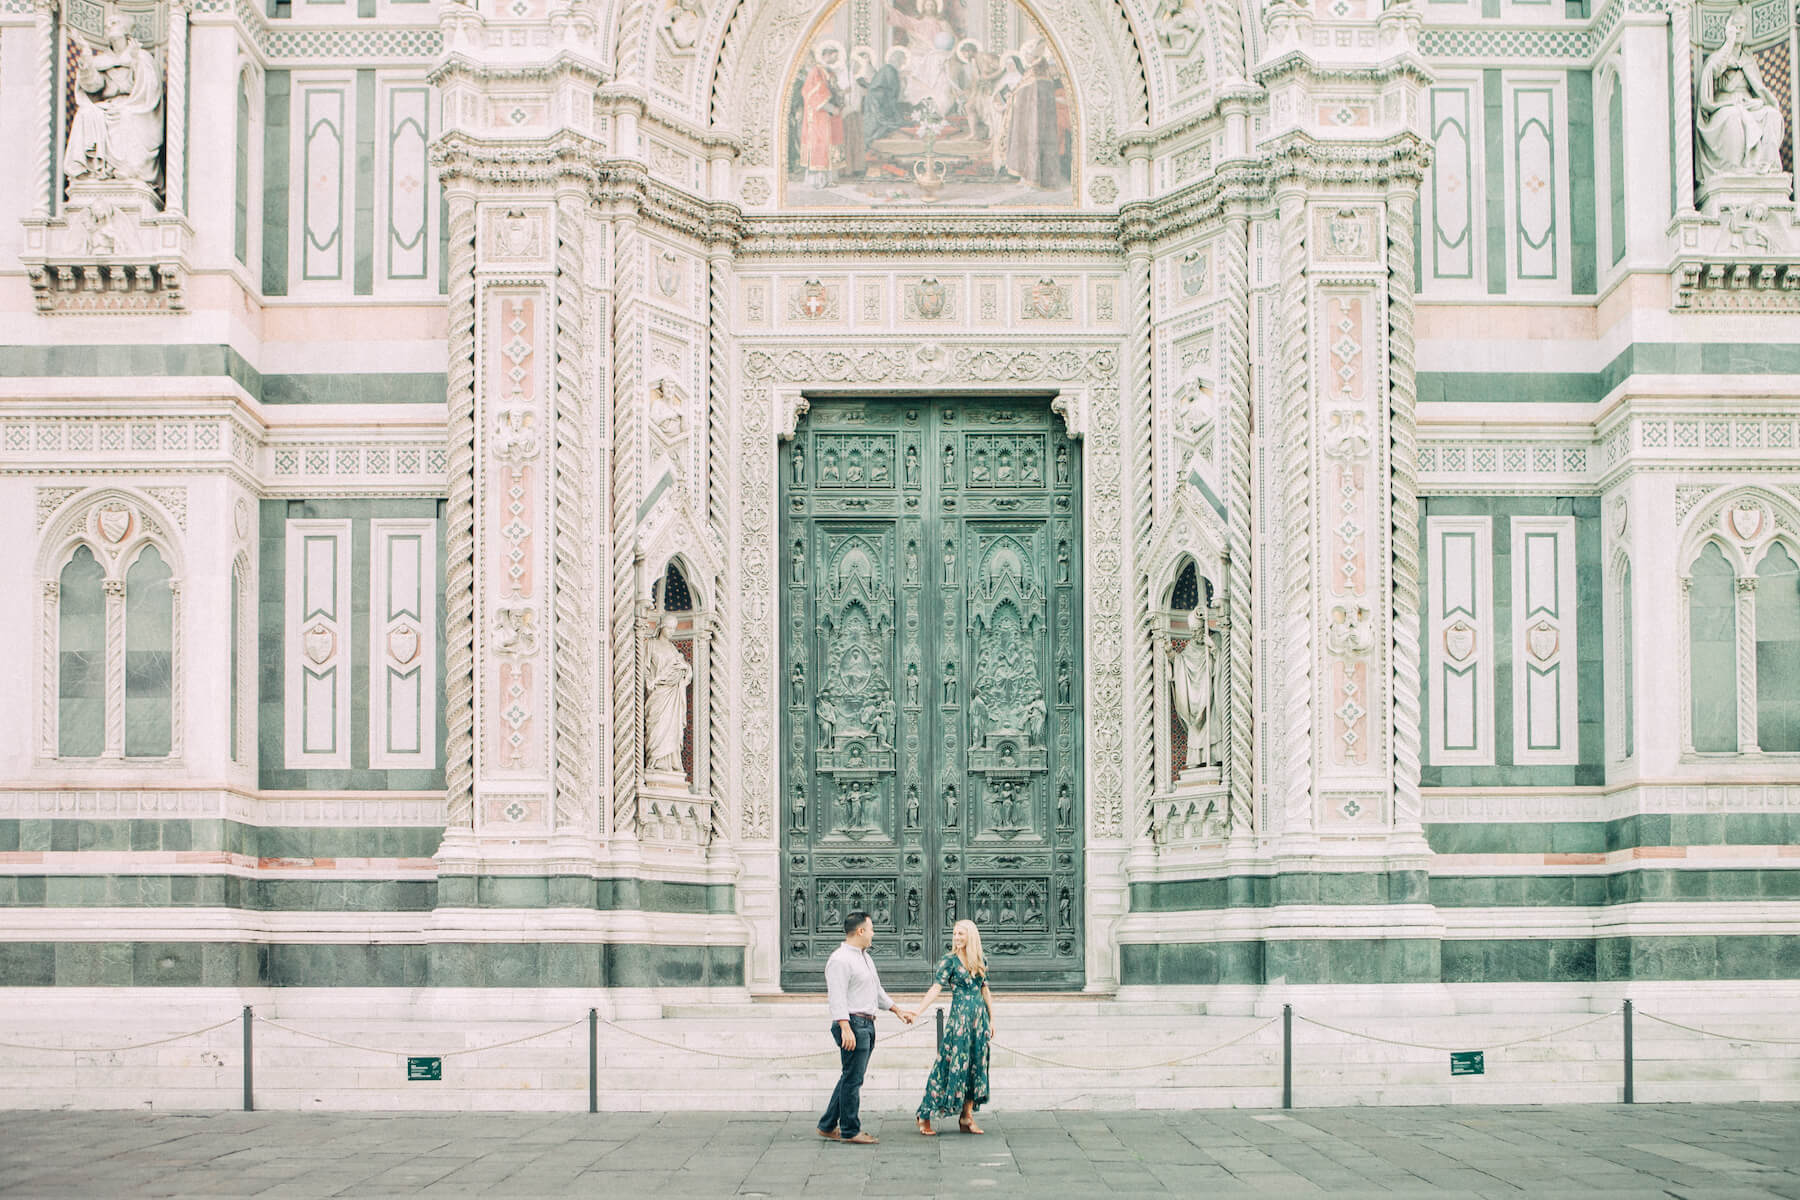 couple walking in front of the Duomo church in Florence, Italy